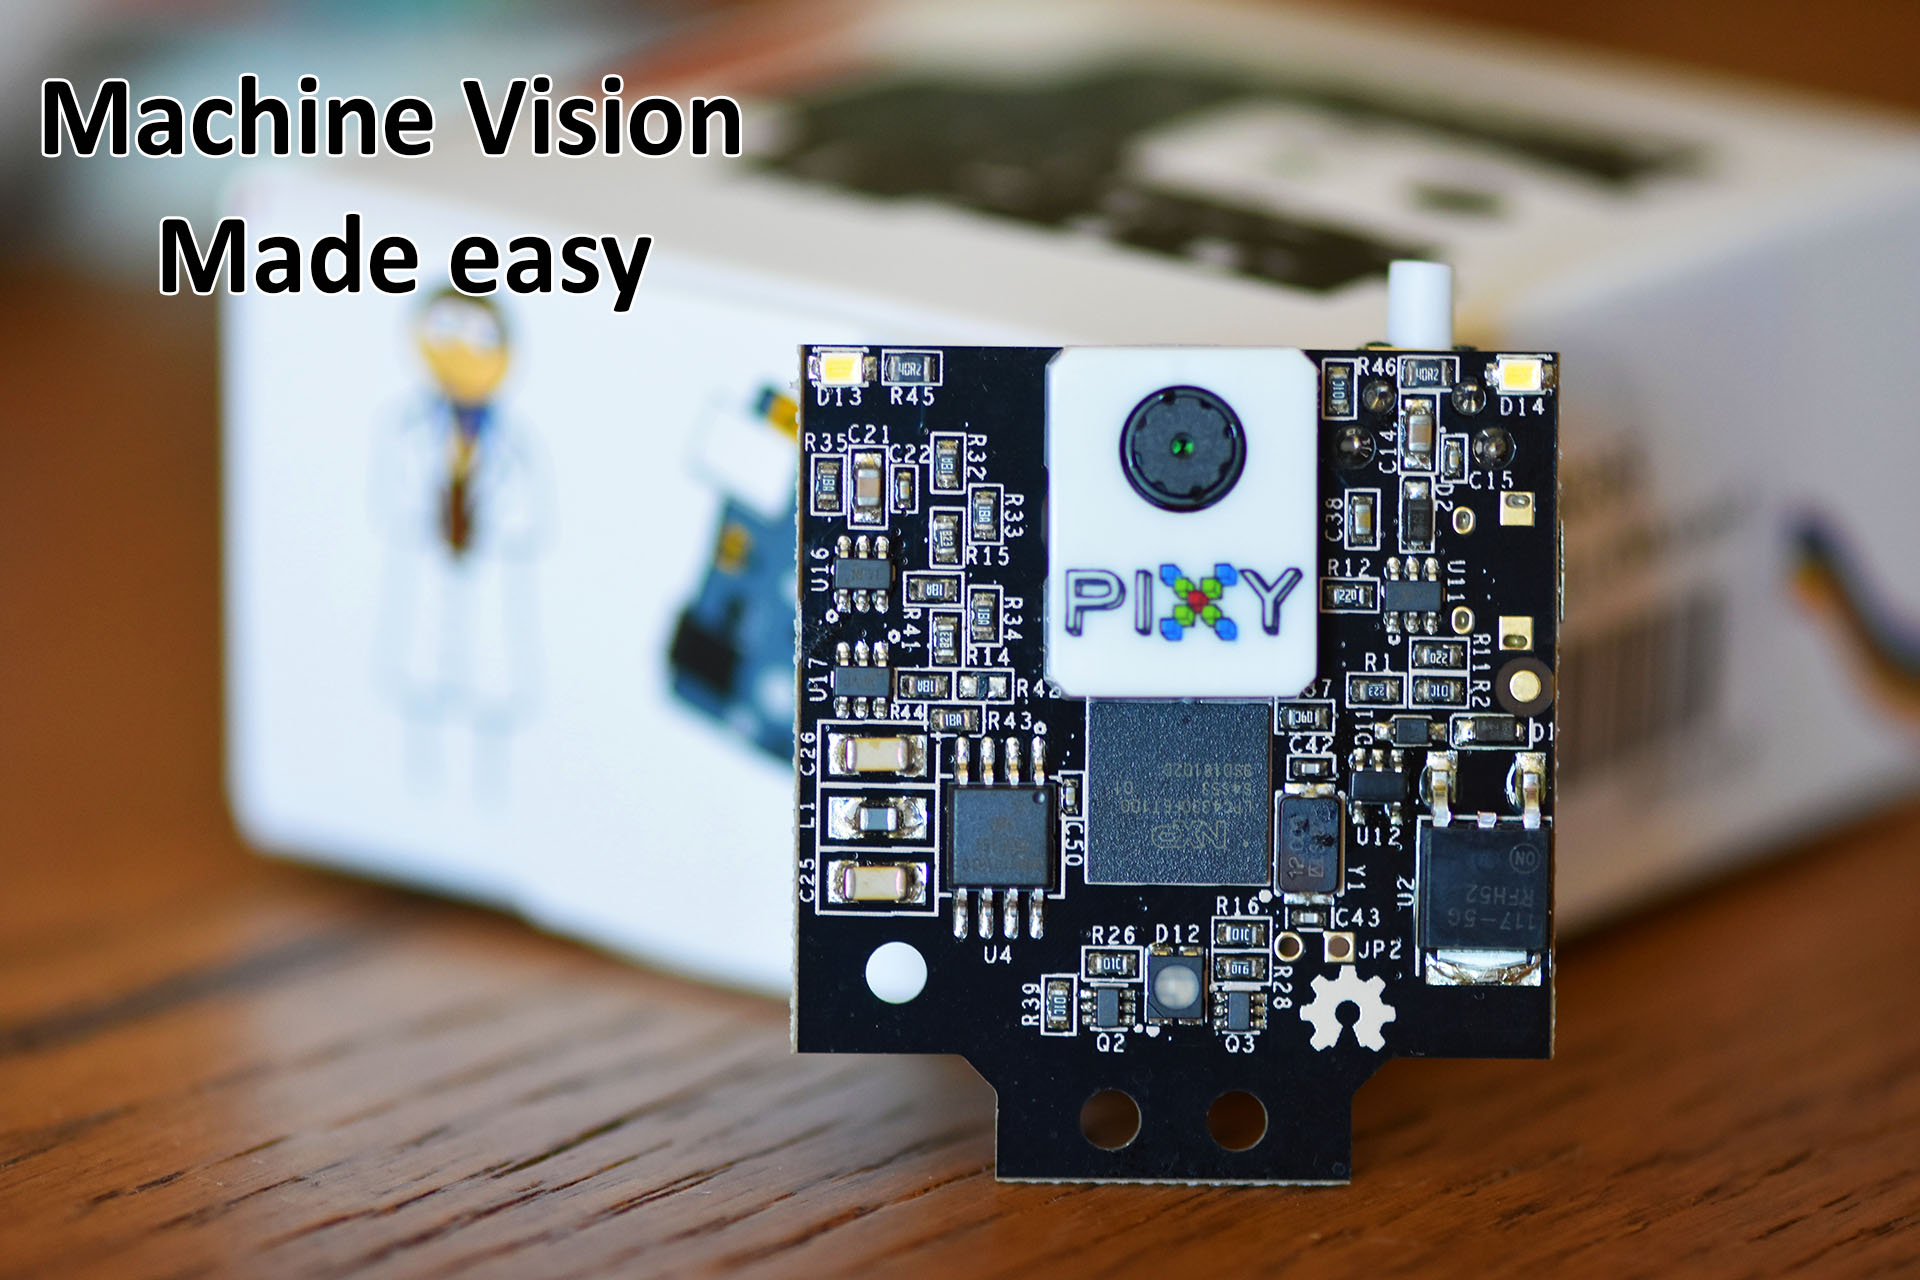 Pixy2 Cam - Machine Vision made easy - educ8s tv - Watch Learn Build